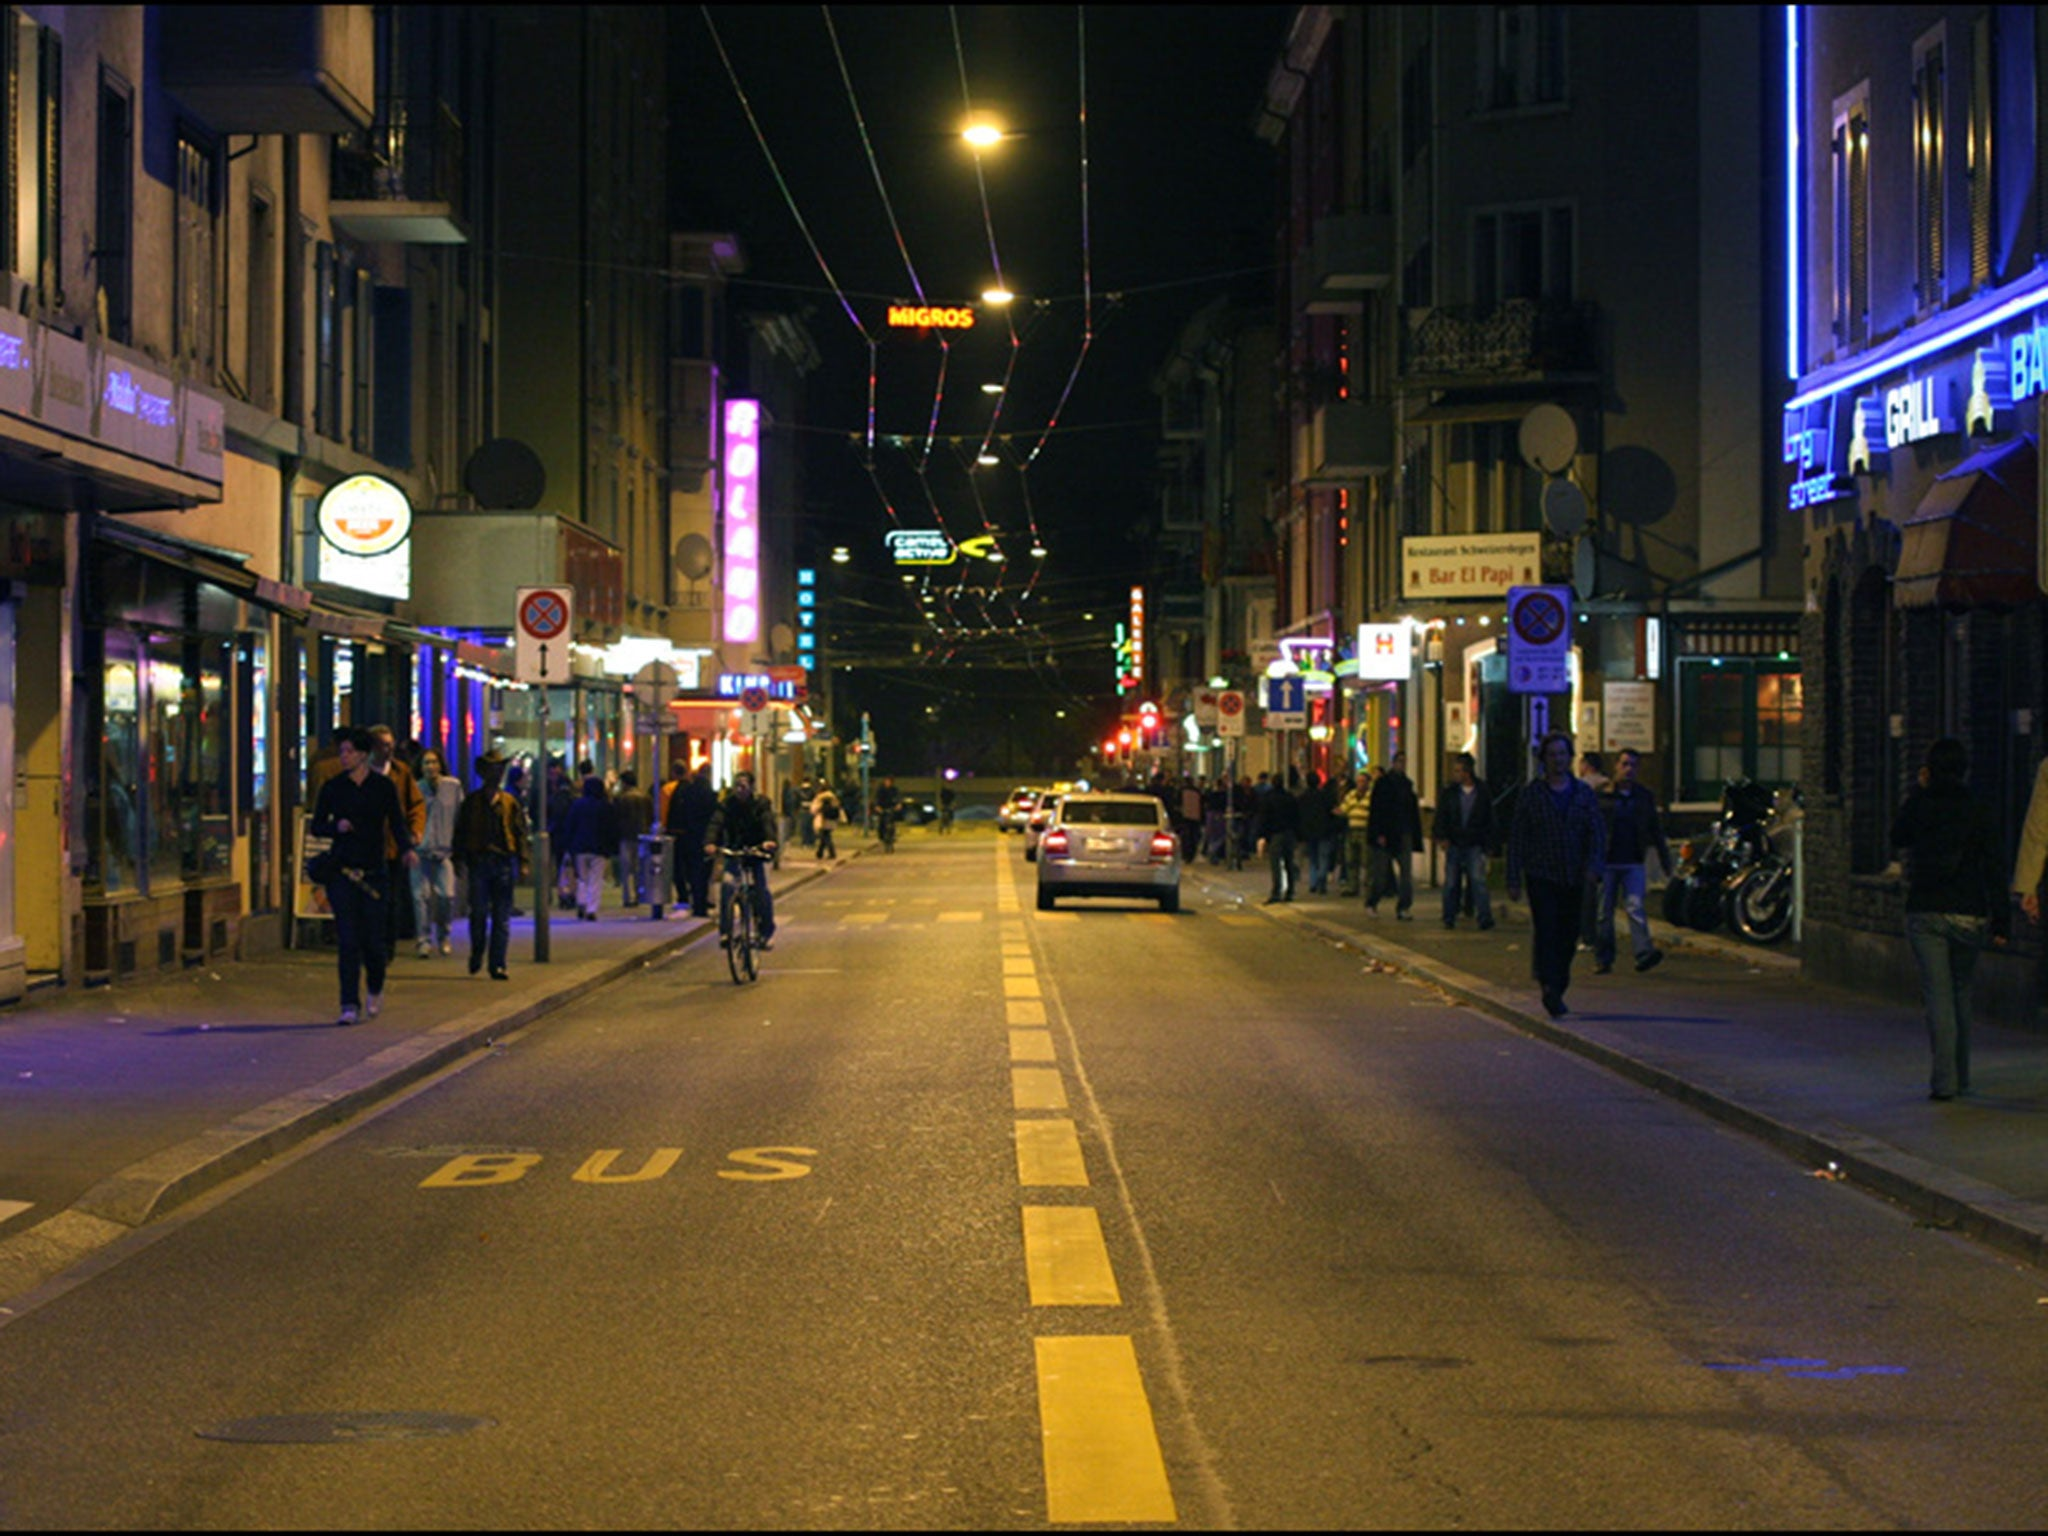 Zurich S Red Light District Impacted As Bankers Cut Back